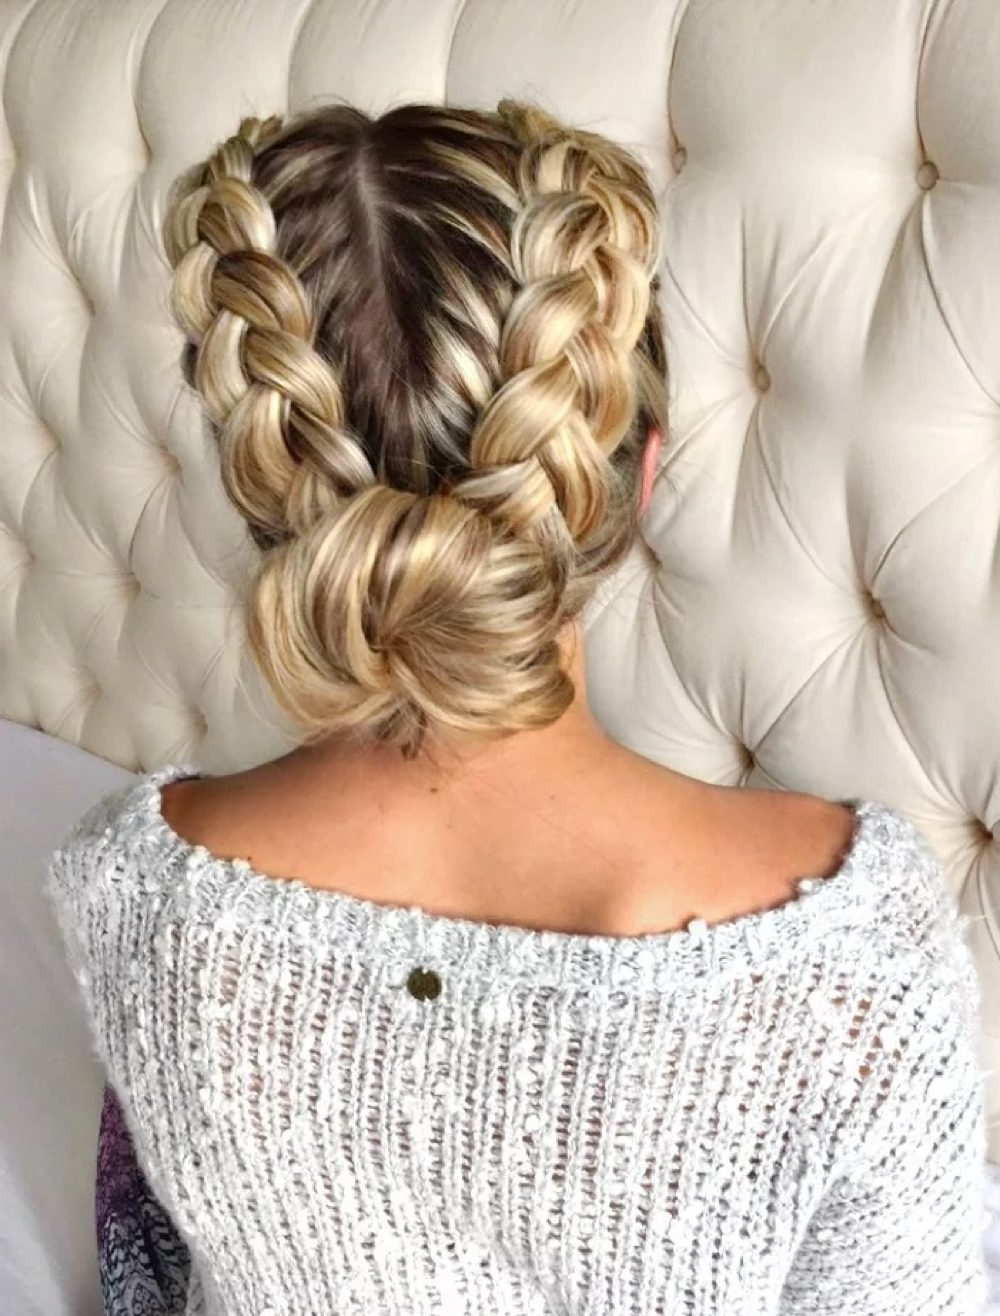 26 Gorgeous Braided Updos You Must Try In Updo Hairstyles With French Braid (View 1 of 15)